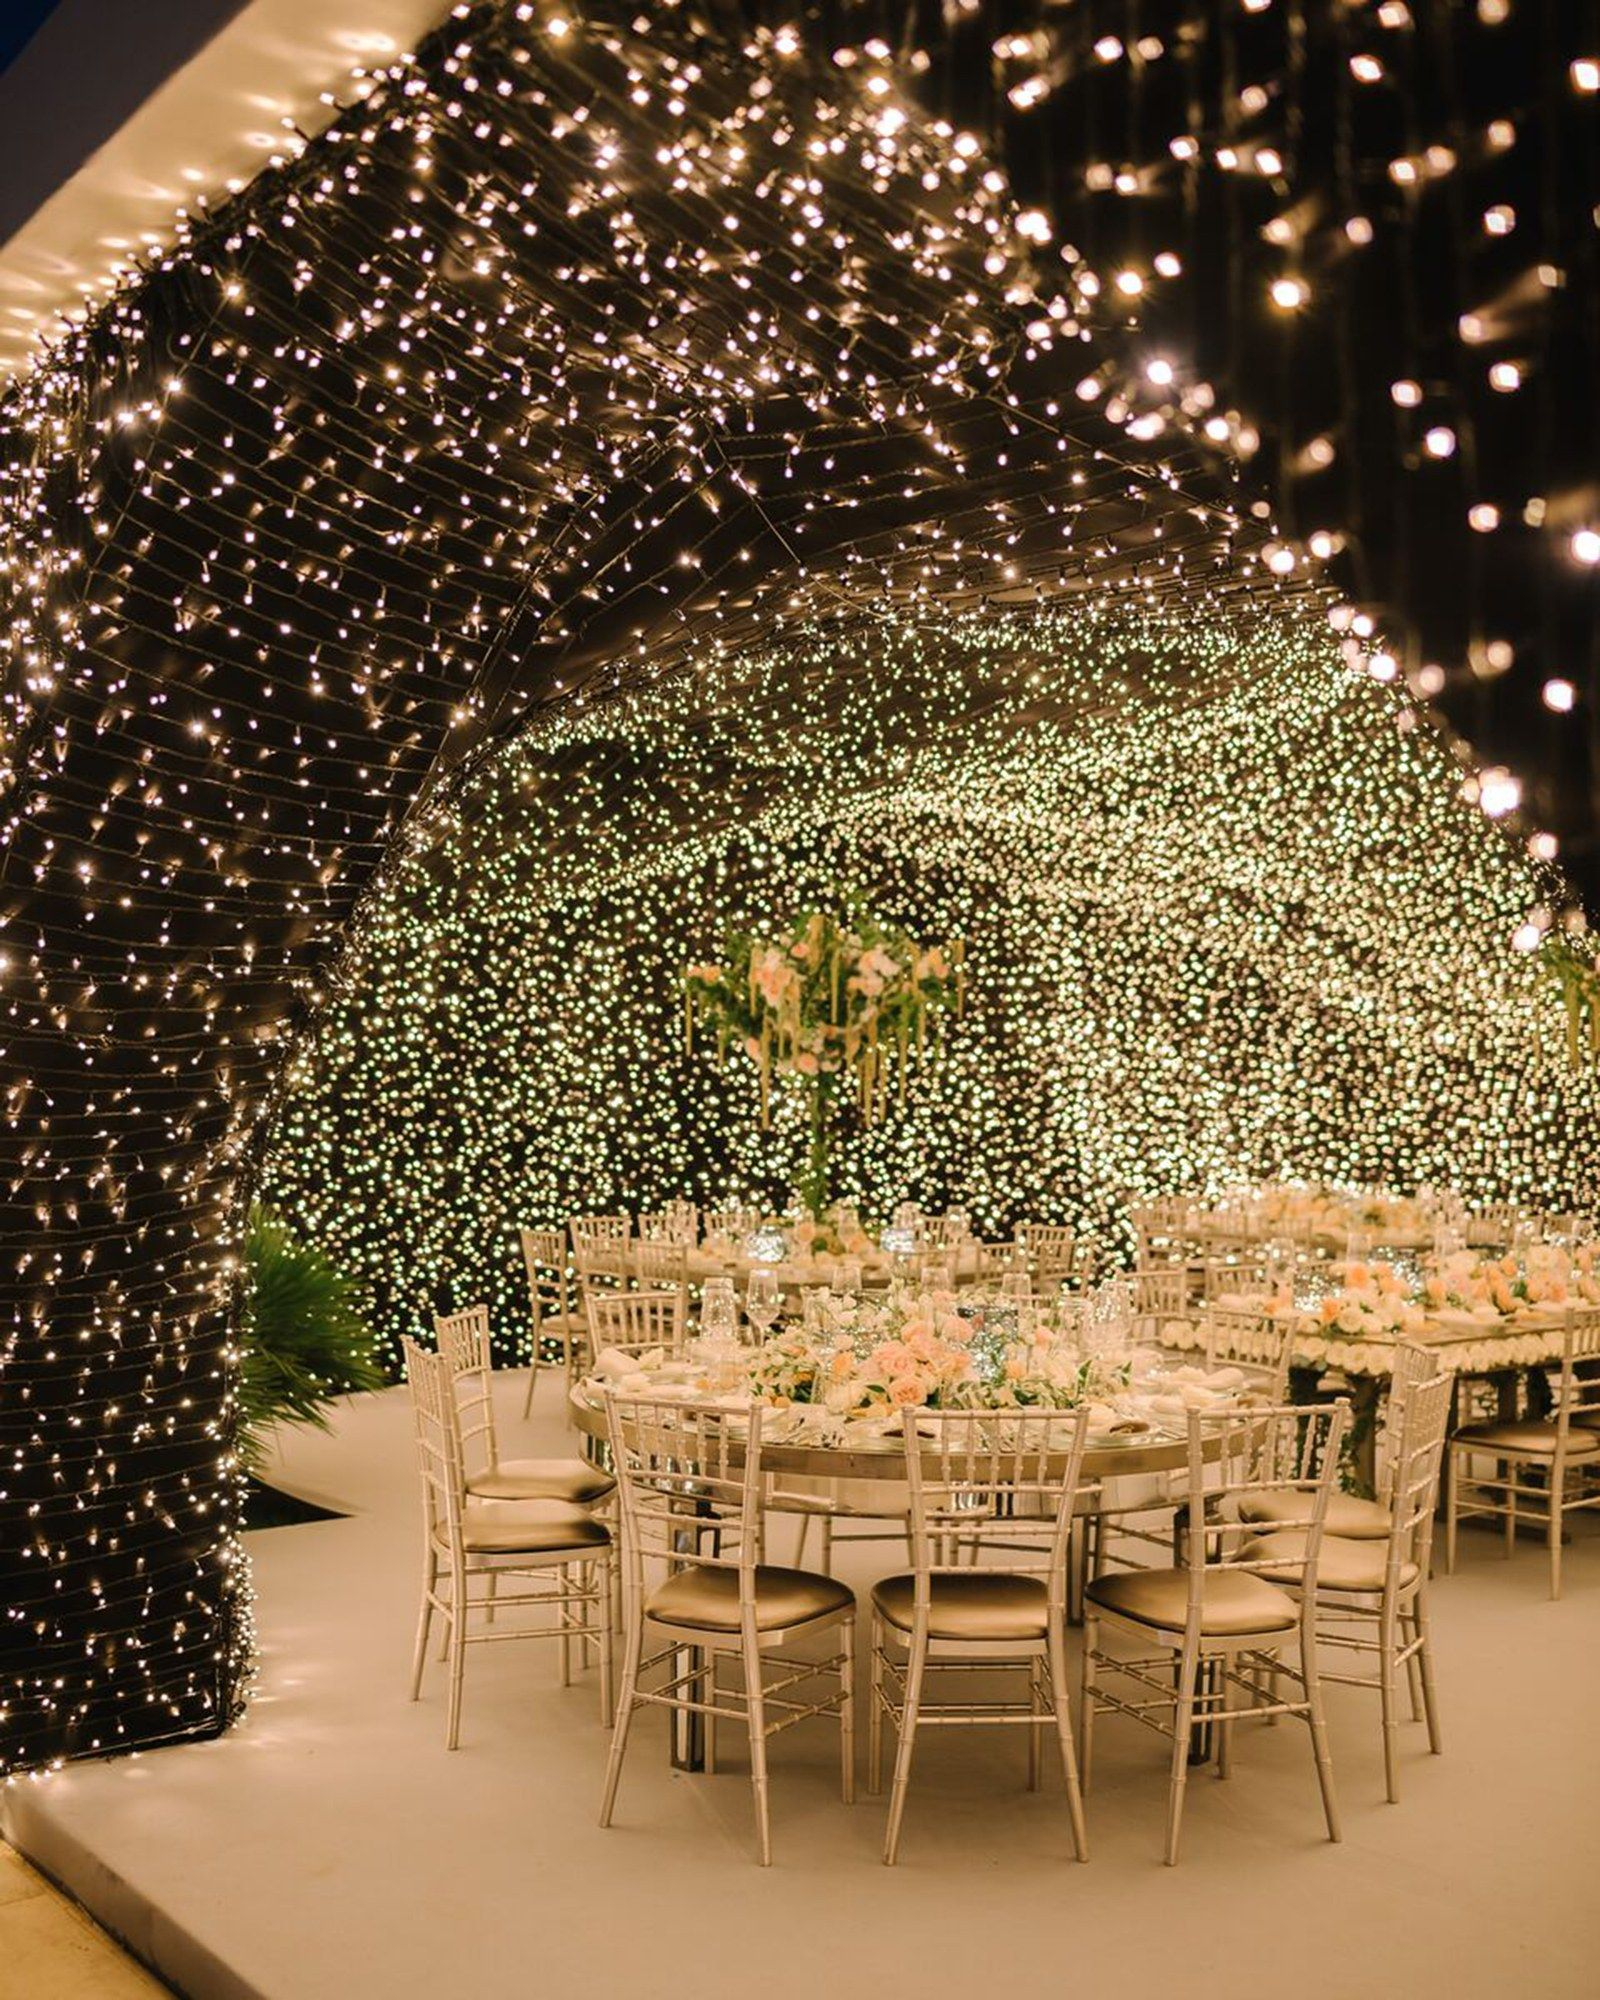 Chair Cover Hire Kerry Painting Metal Chairs An Inside Look At Chiara Ferragni S Wedding Extravaganza In Sicily